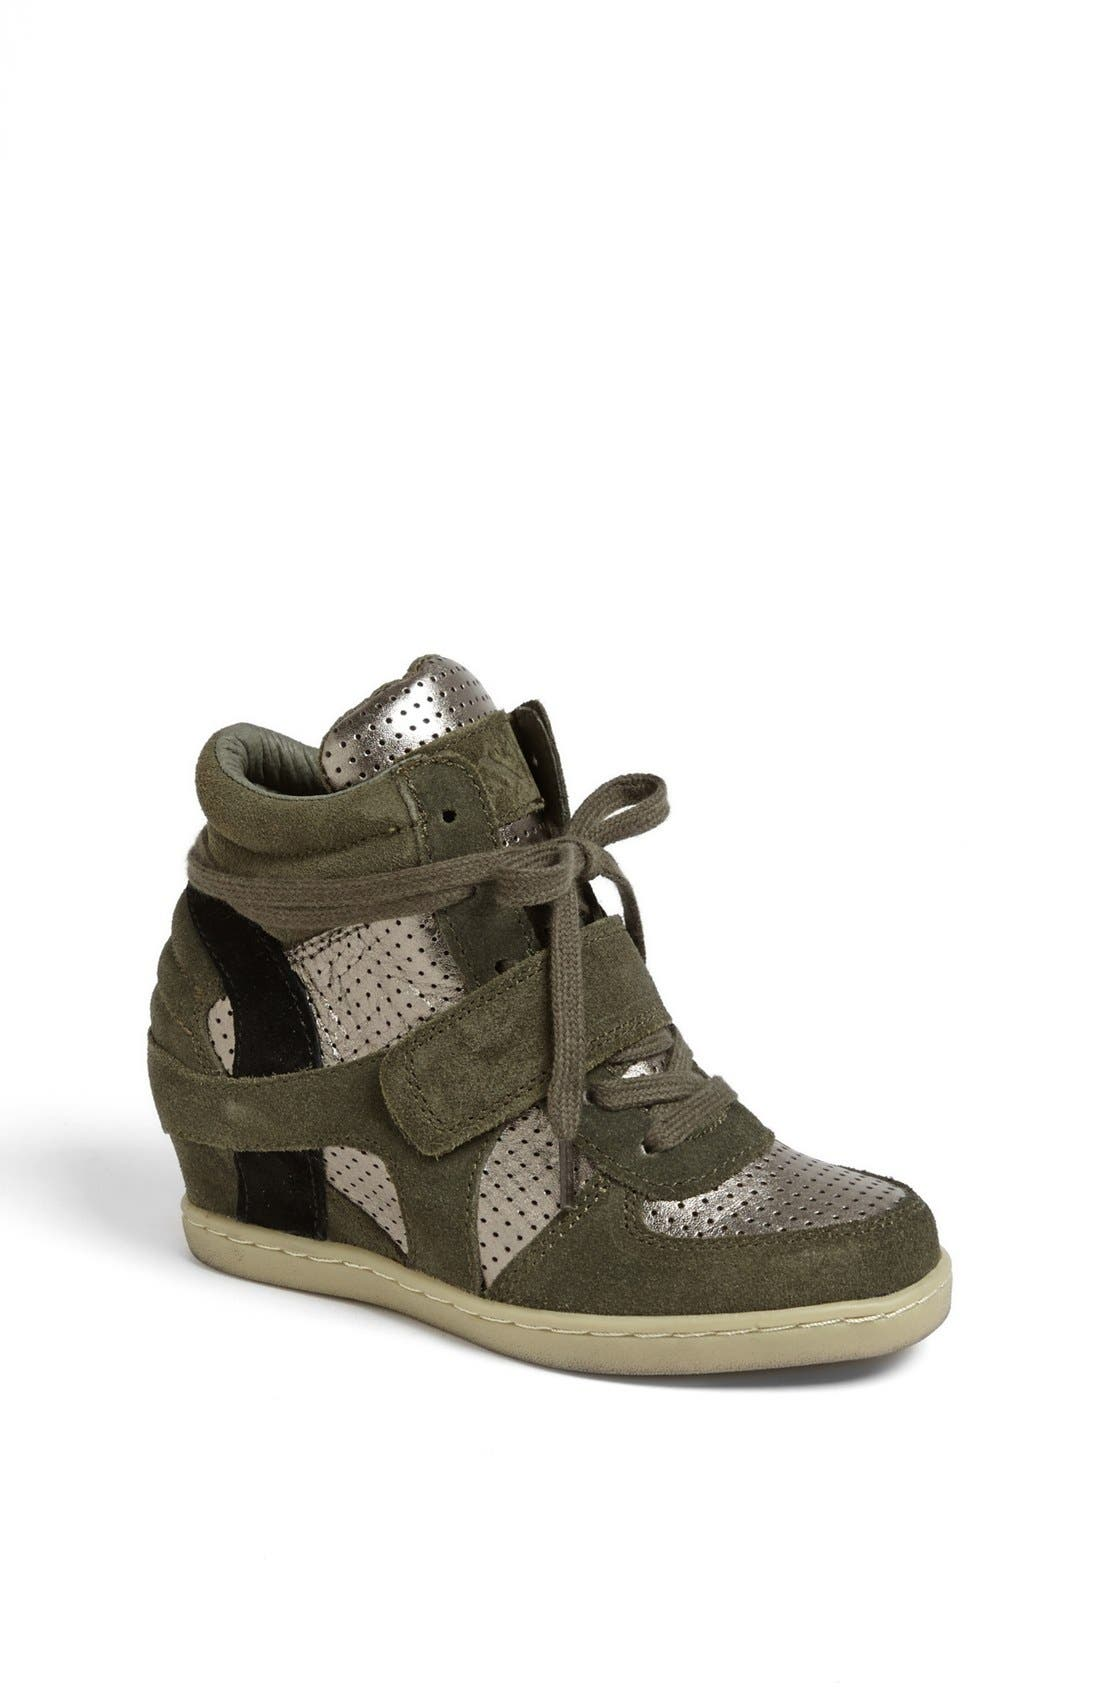 Alternate Image 1 Selected - Ash 'Babe' Hidden Wedge Sneaker (Toddler, Little Kid & Big Kid)